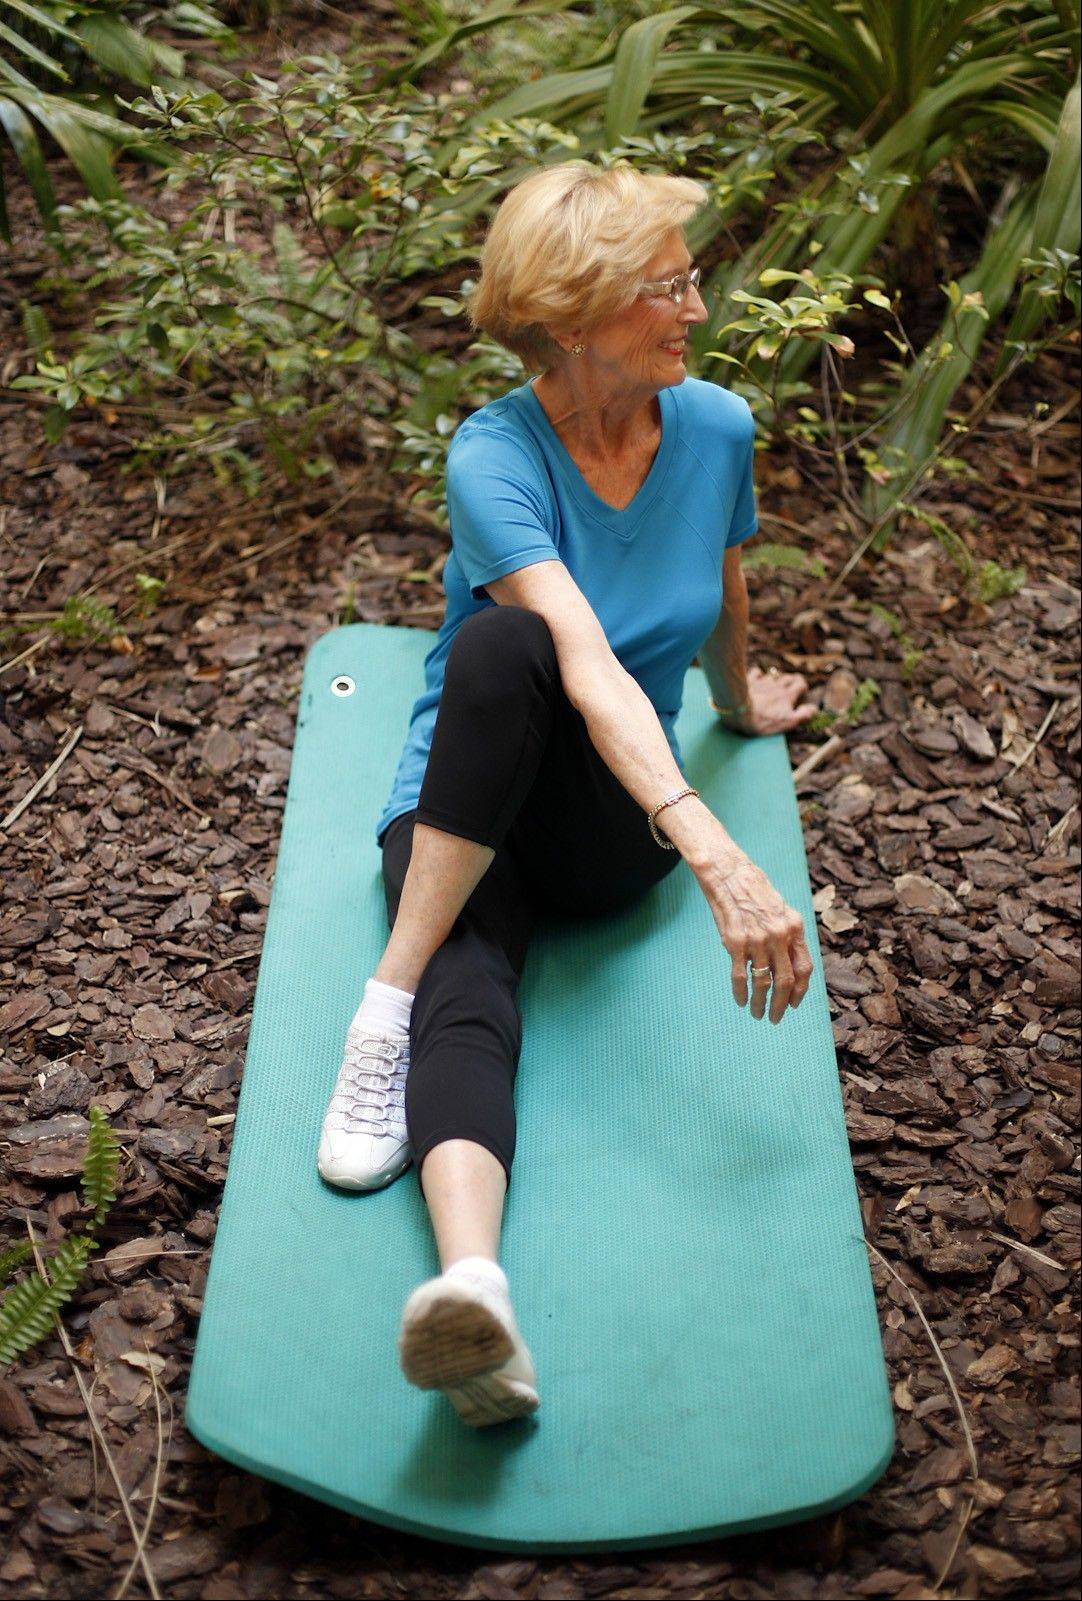 JoAnn French, 72, demonstrates a pretzel stretch.